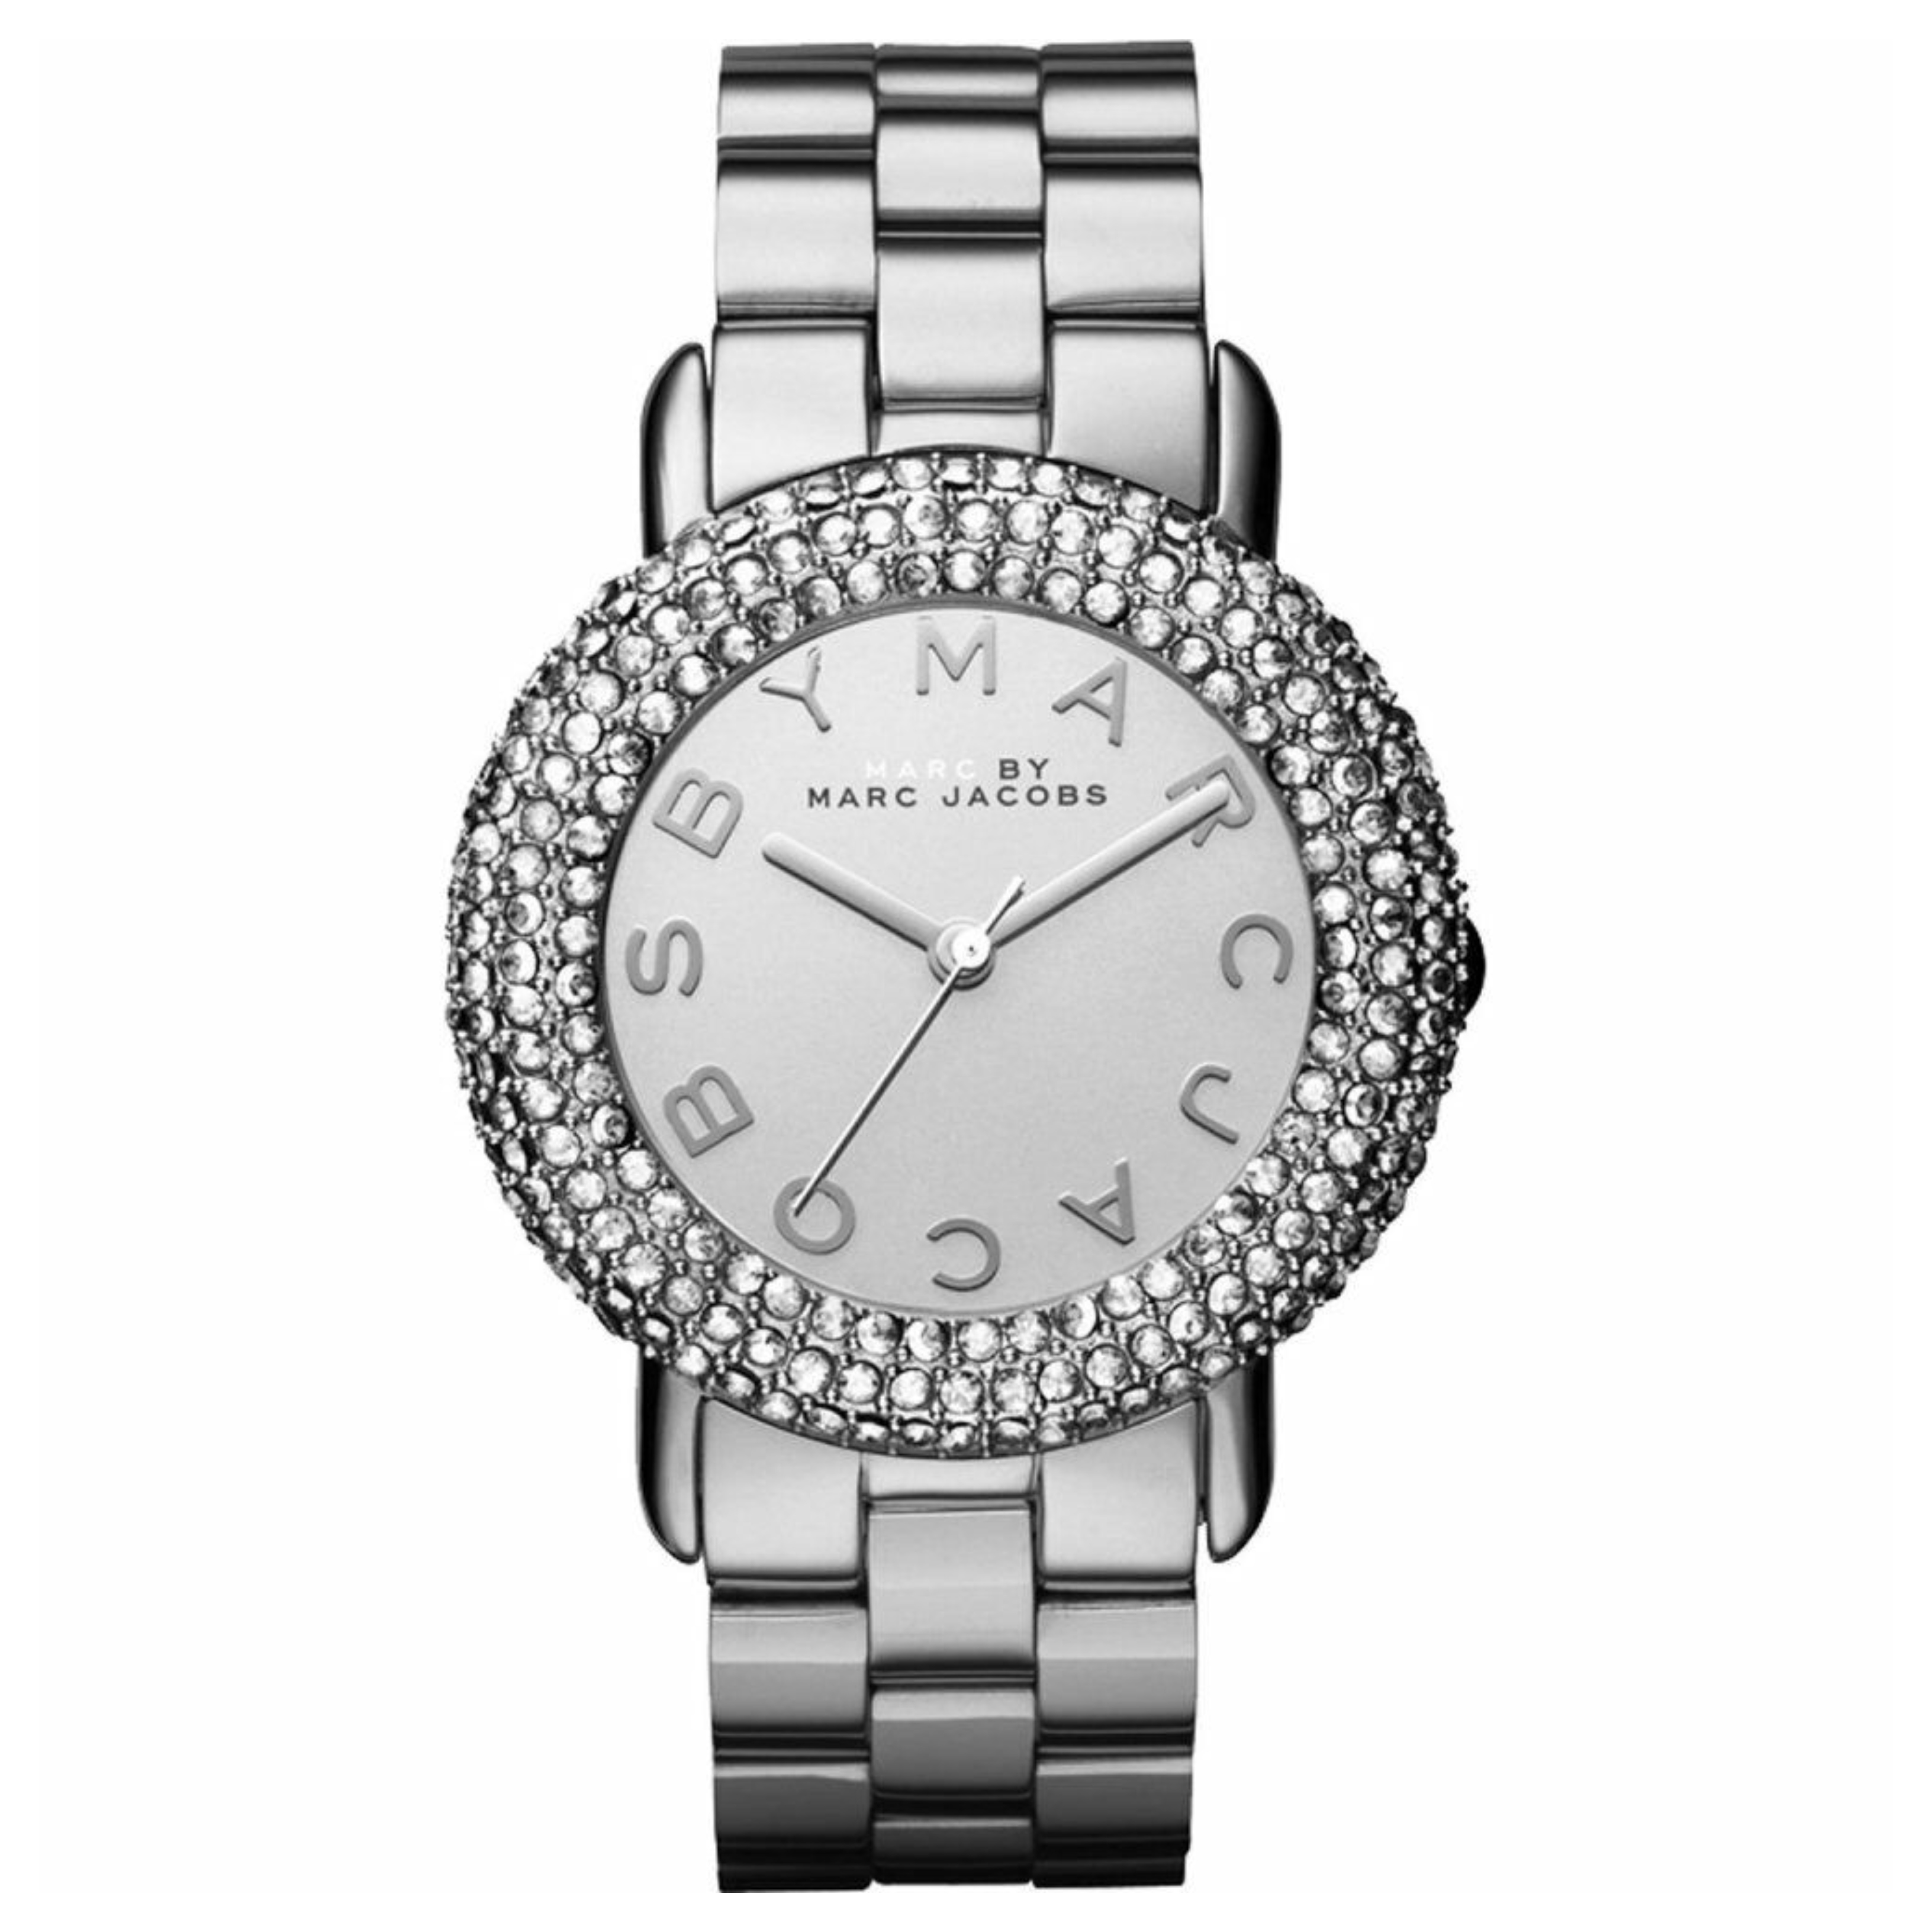 Marc Jacobs Marci Ladies Watch | Crystal Bezel Silver Dial | Stainless Strap | MBM3190